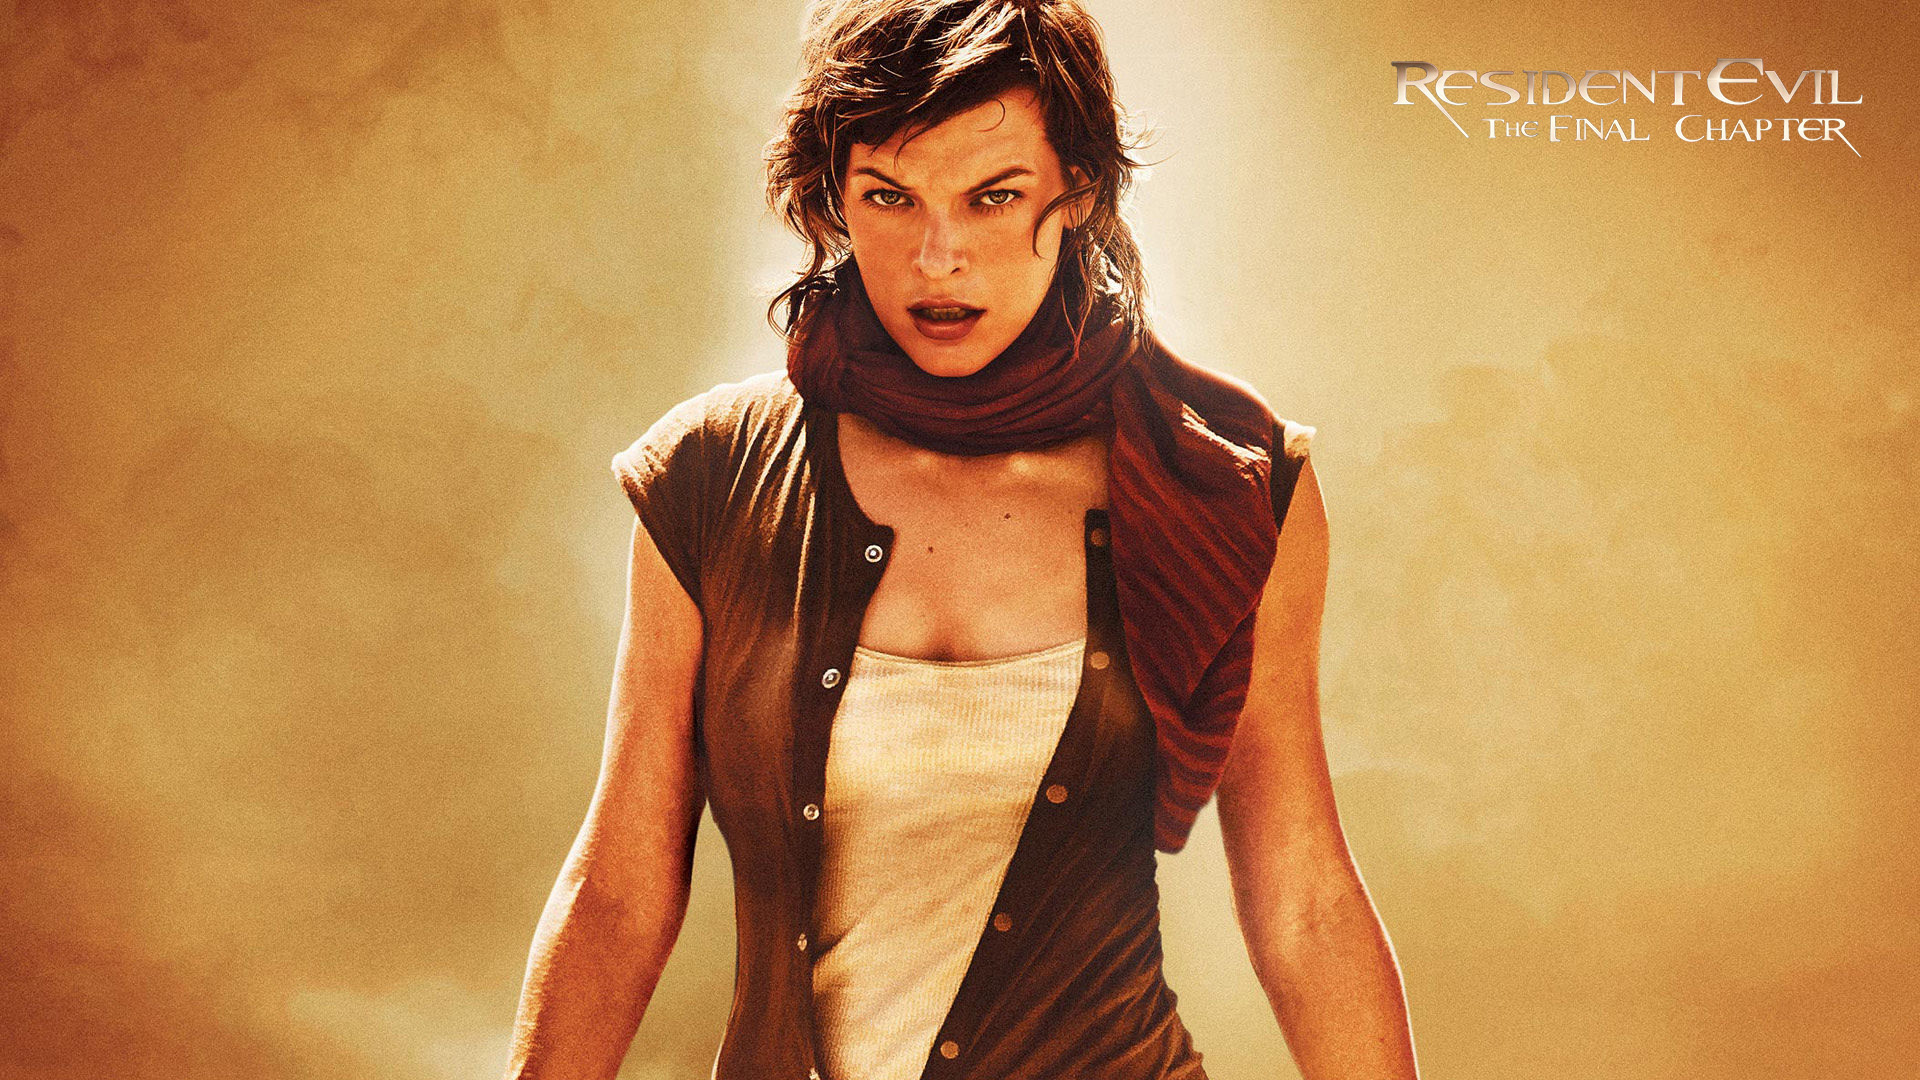 Resident evil the final chapter hd wallpapers - Milla jovovich 4k wallpaper ...